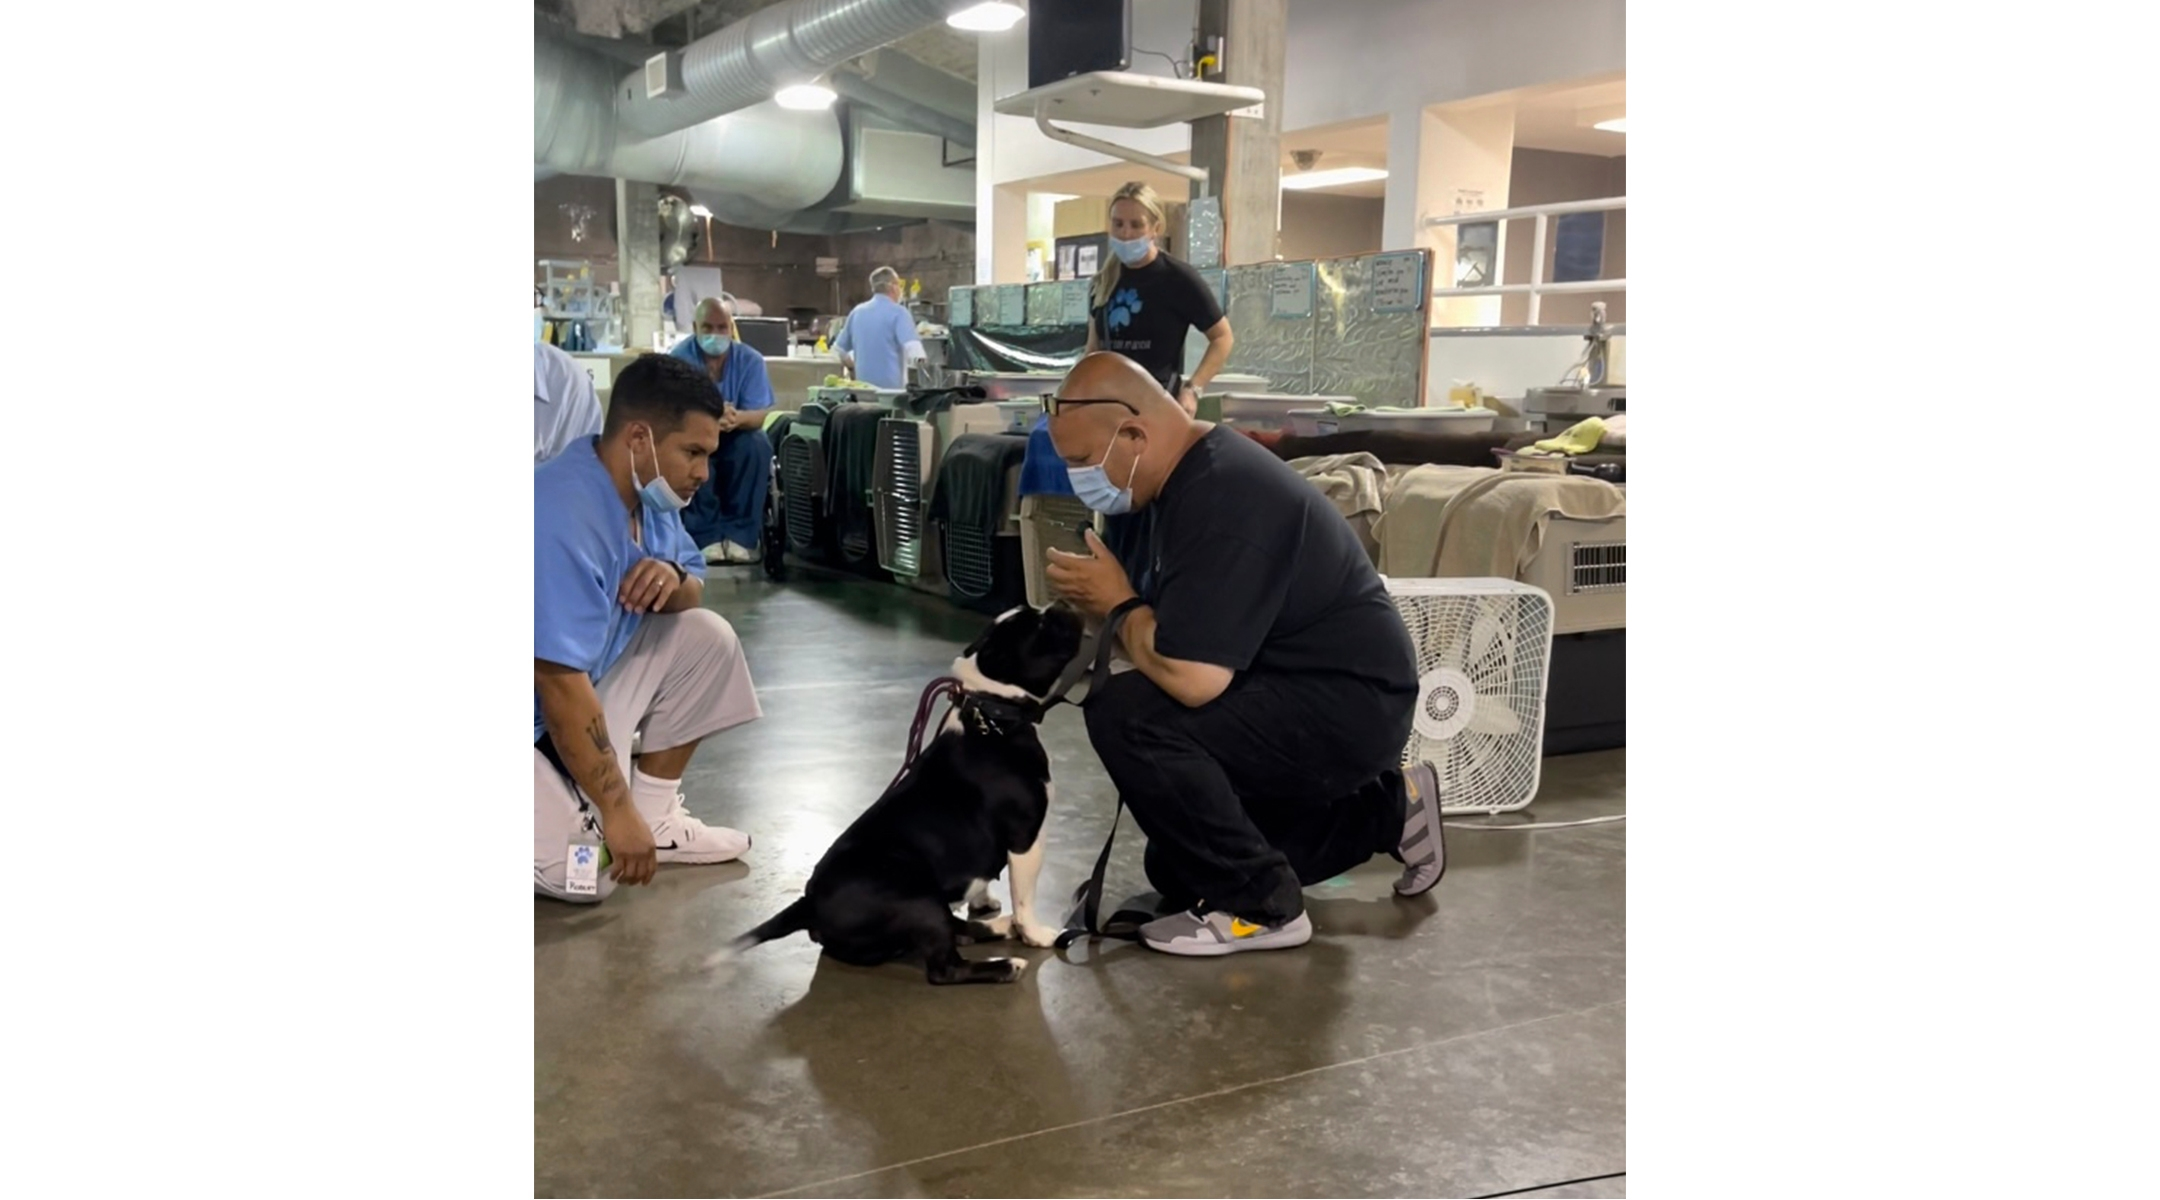 In prison, a man tends to a dog.